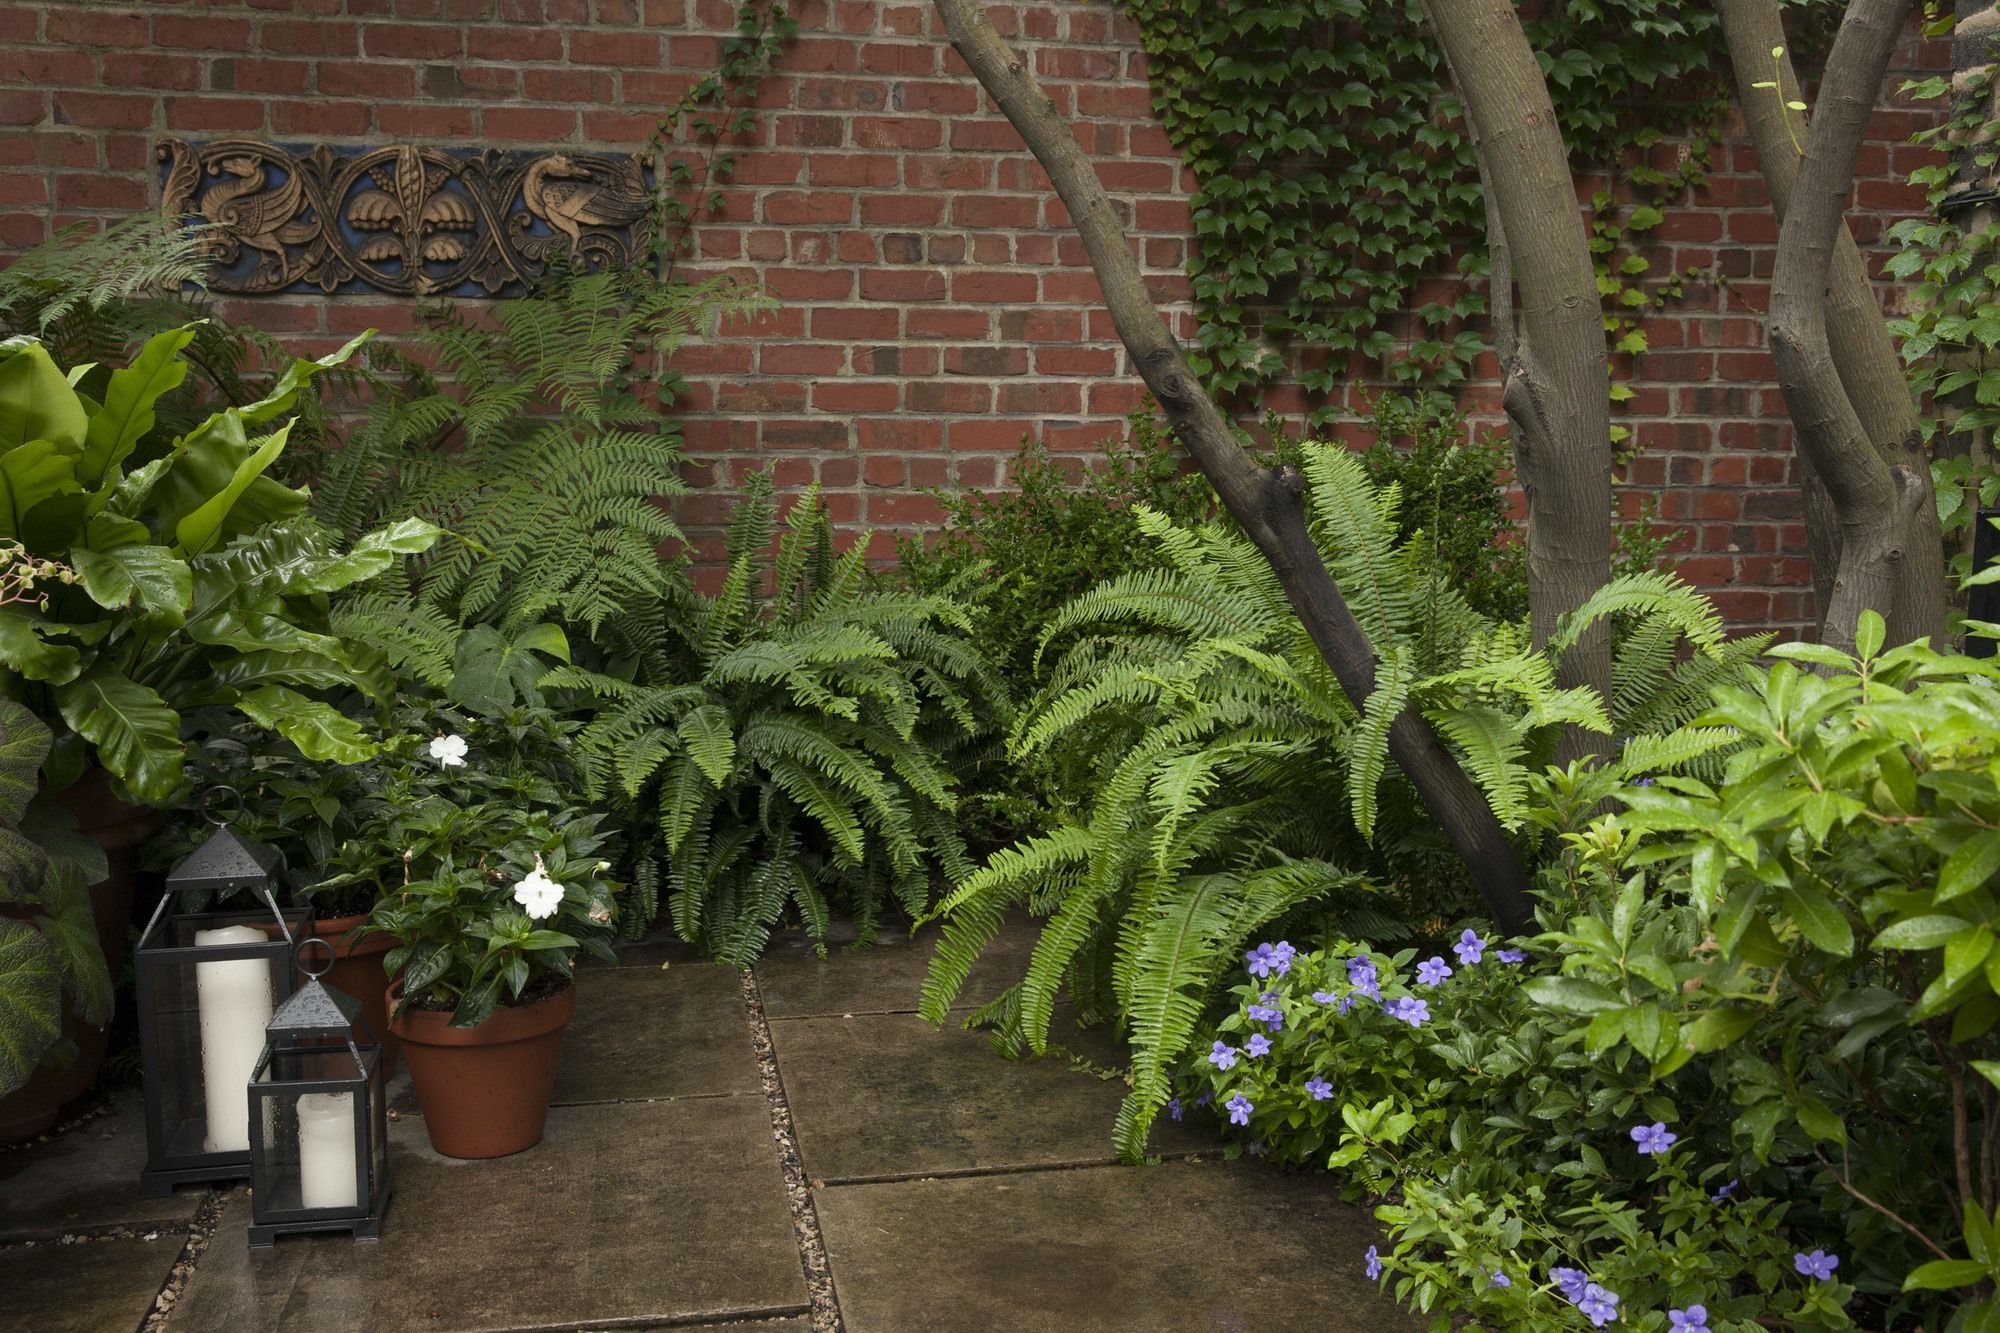 Layers of potted tropicals, impatience and philodendrons add color, texture and depth to the yard. Image courtesy of Jayson DeGeeter.